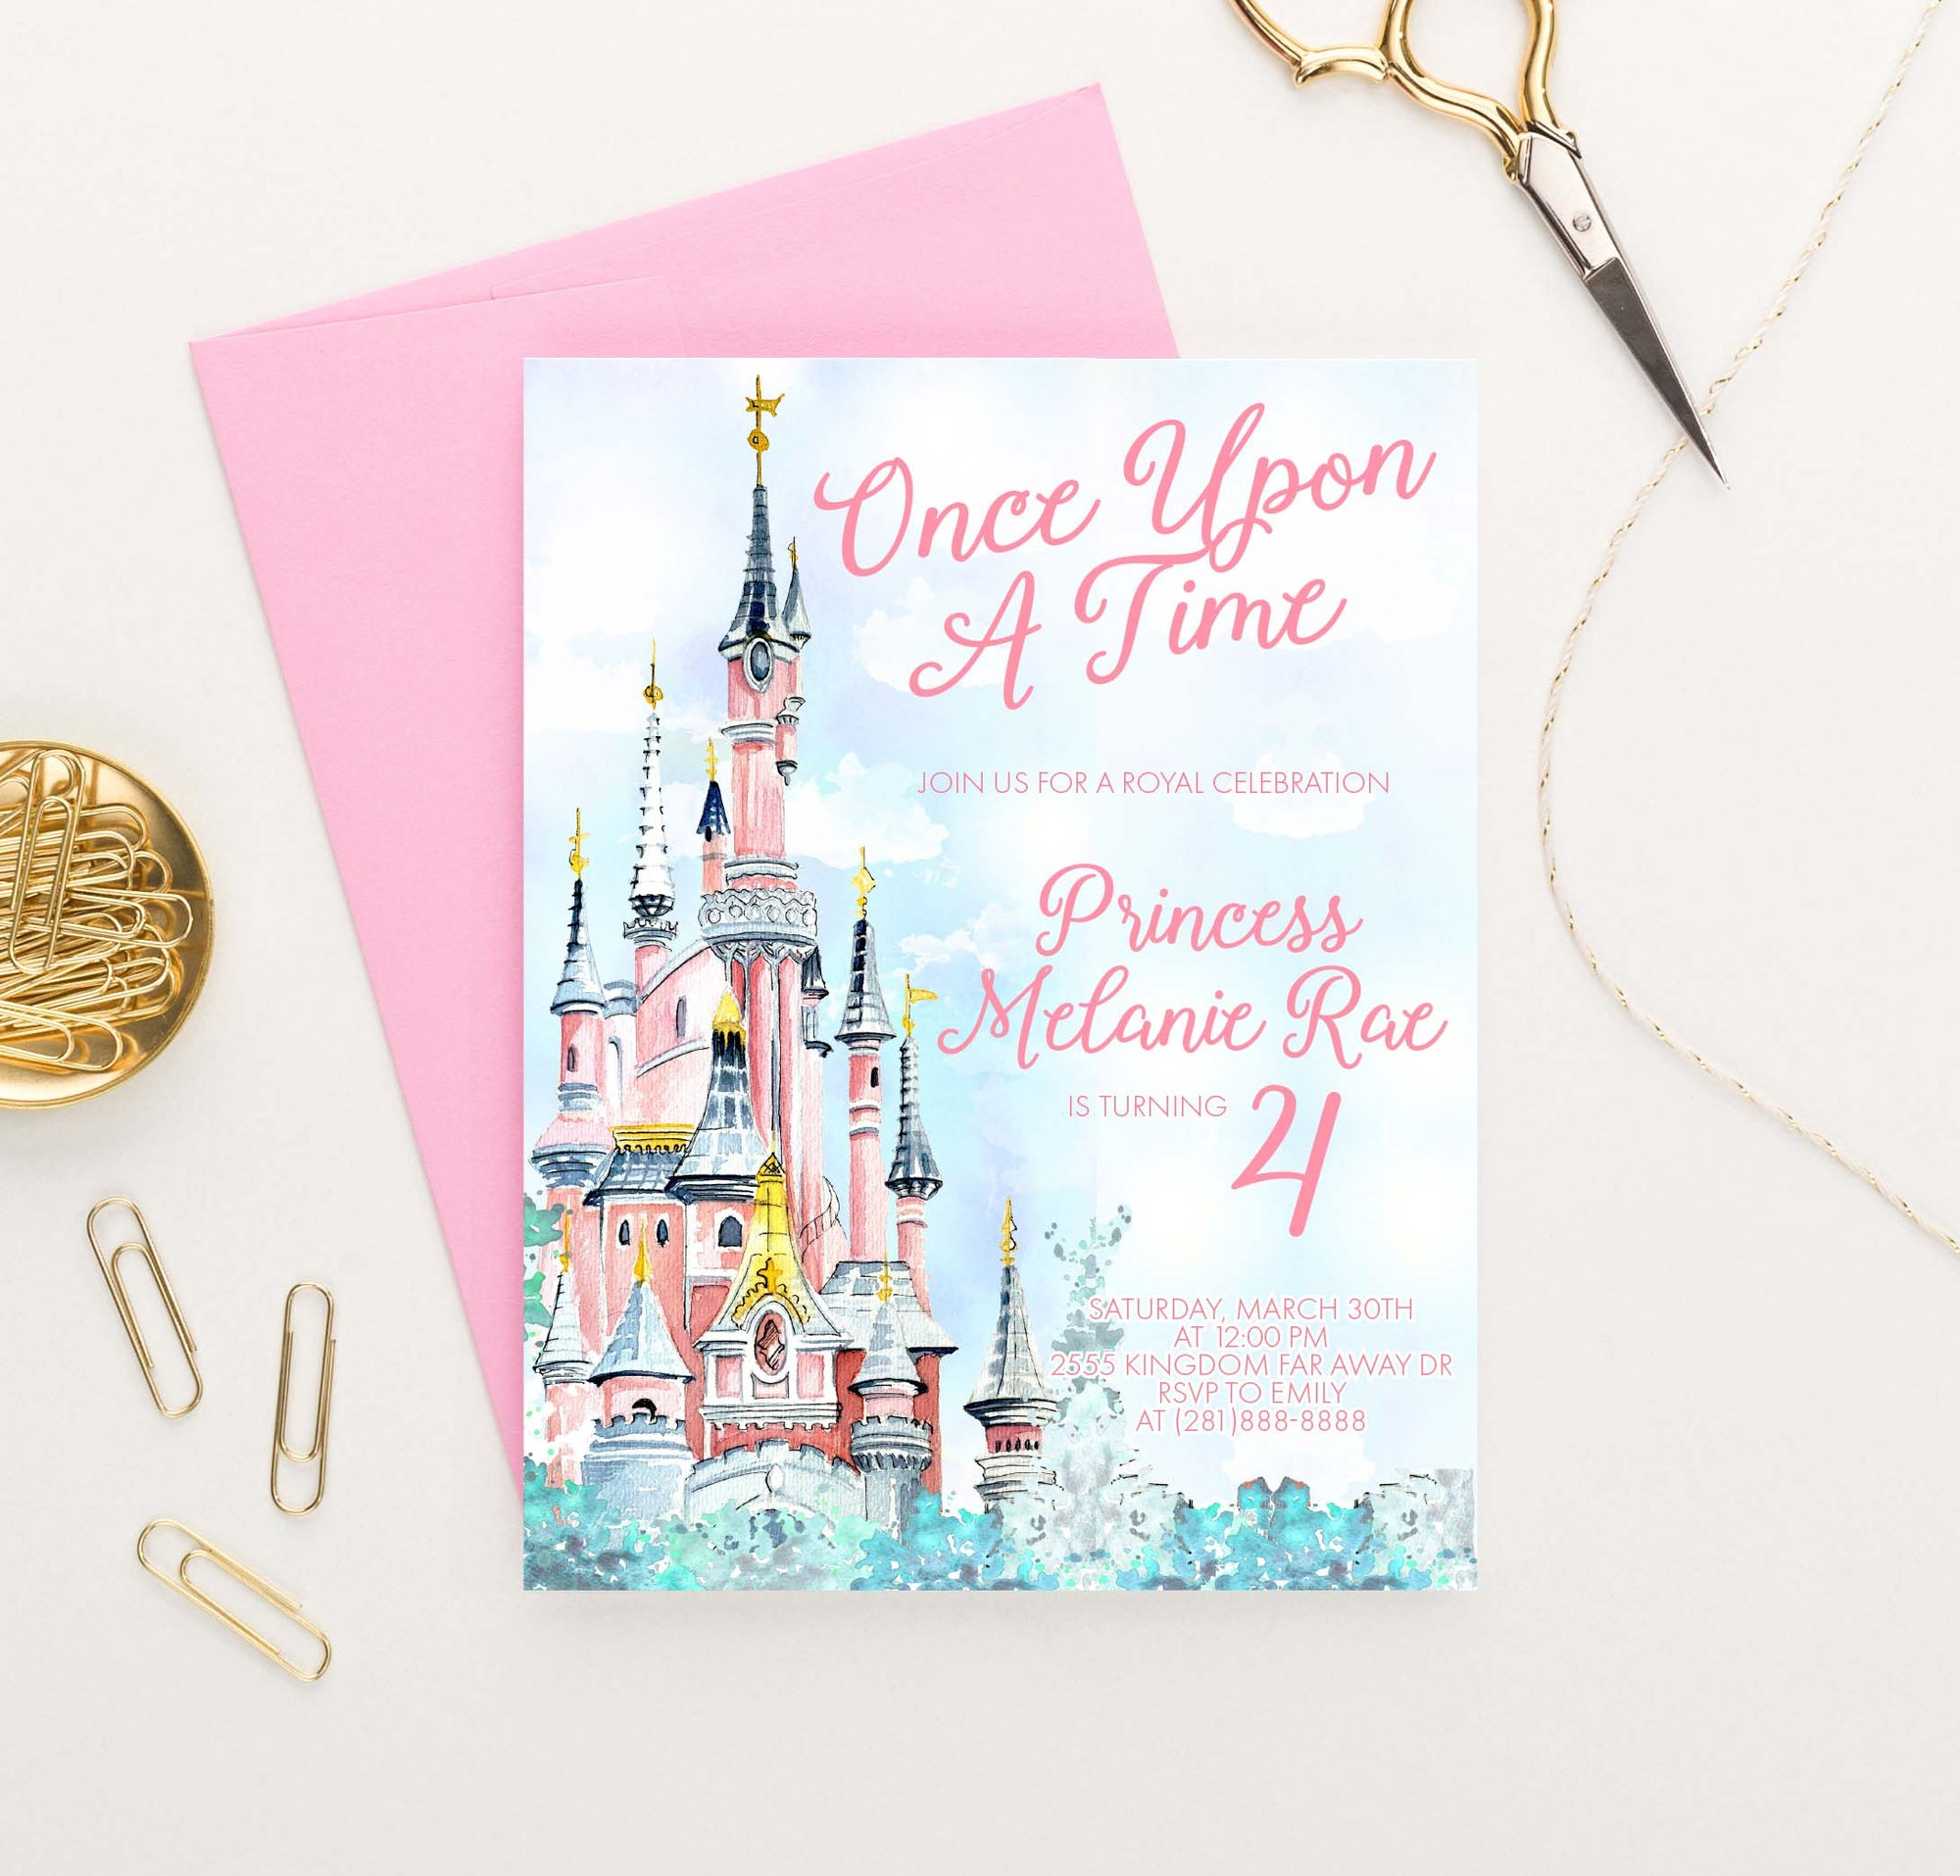 BI107 once upon a time birthday party invites with princess castle fairytale magical